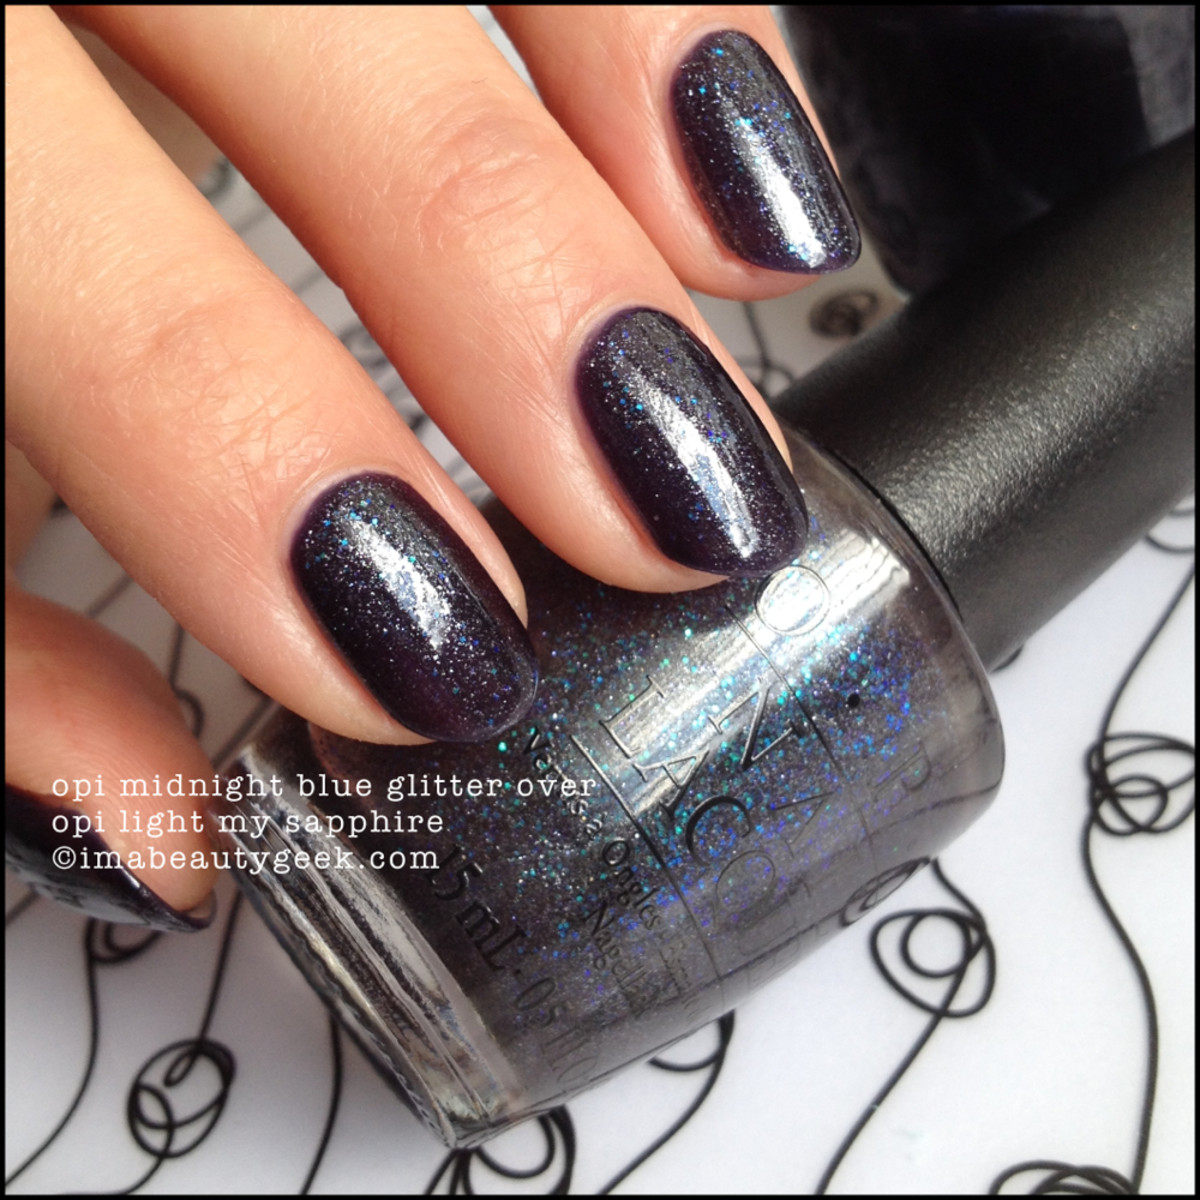 OPI Midnight Blue Glitter over OPI Light My Sapphire Beautygeeks